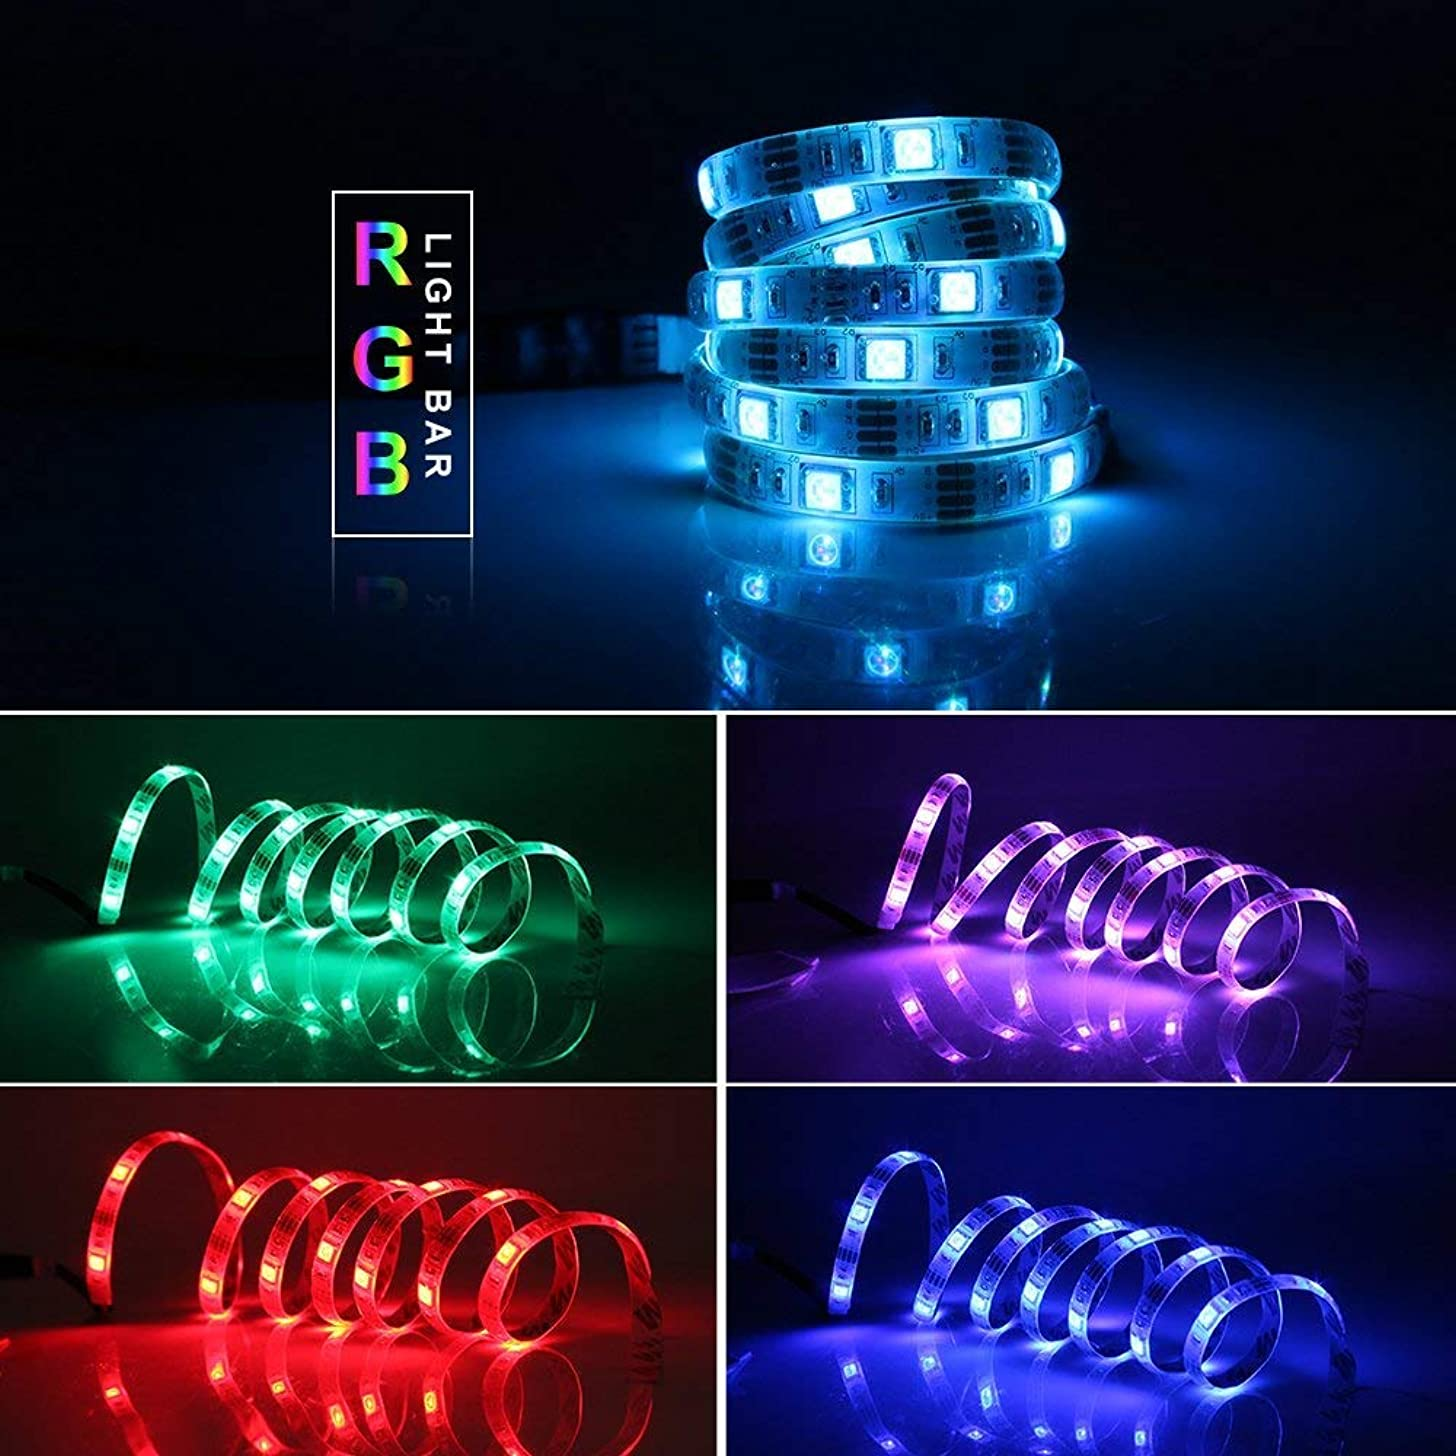 GOESWELL Led Strip Light 5050 30LEDs RGB Battery Powered Color Change SMD Led Strip 1M/3.3FT with Mini Controlle